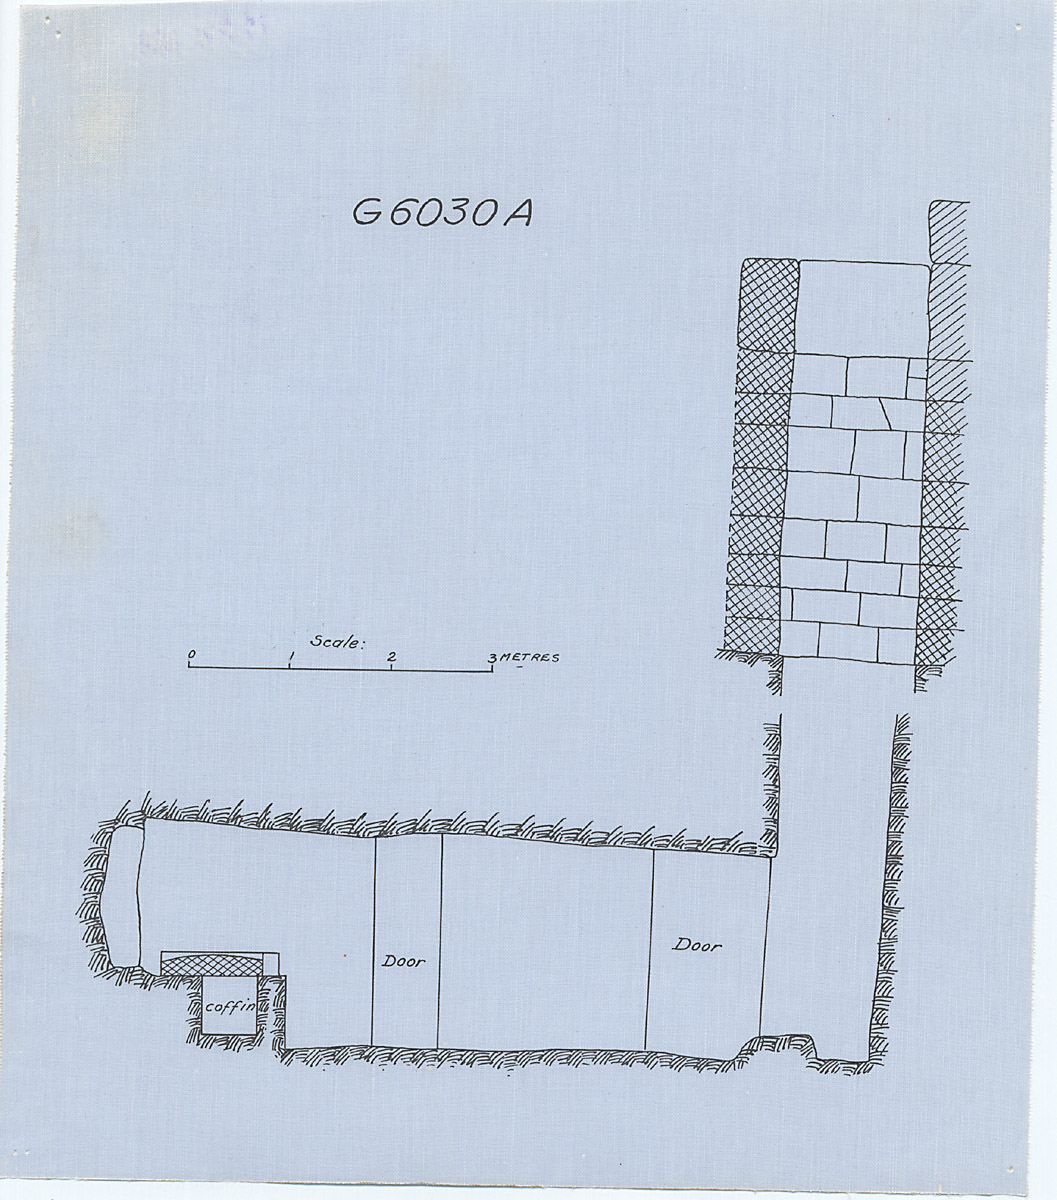 Maps and plans: G 6030, Shaft A